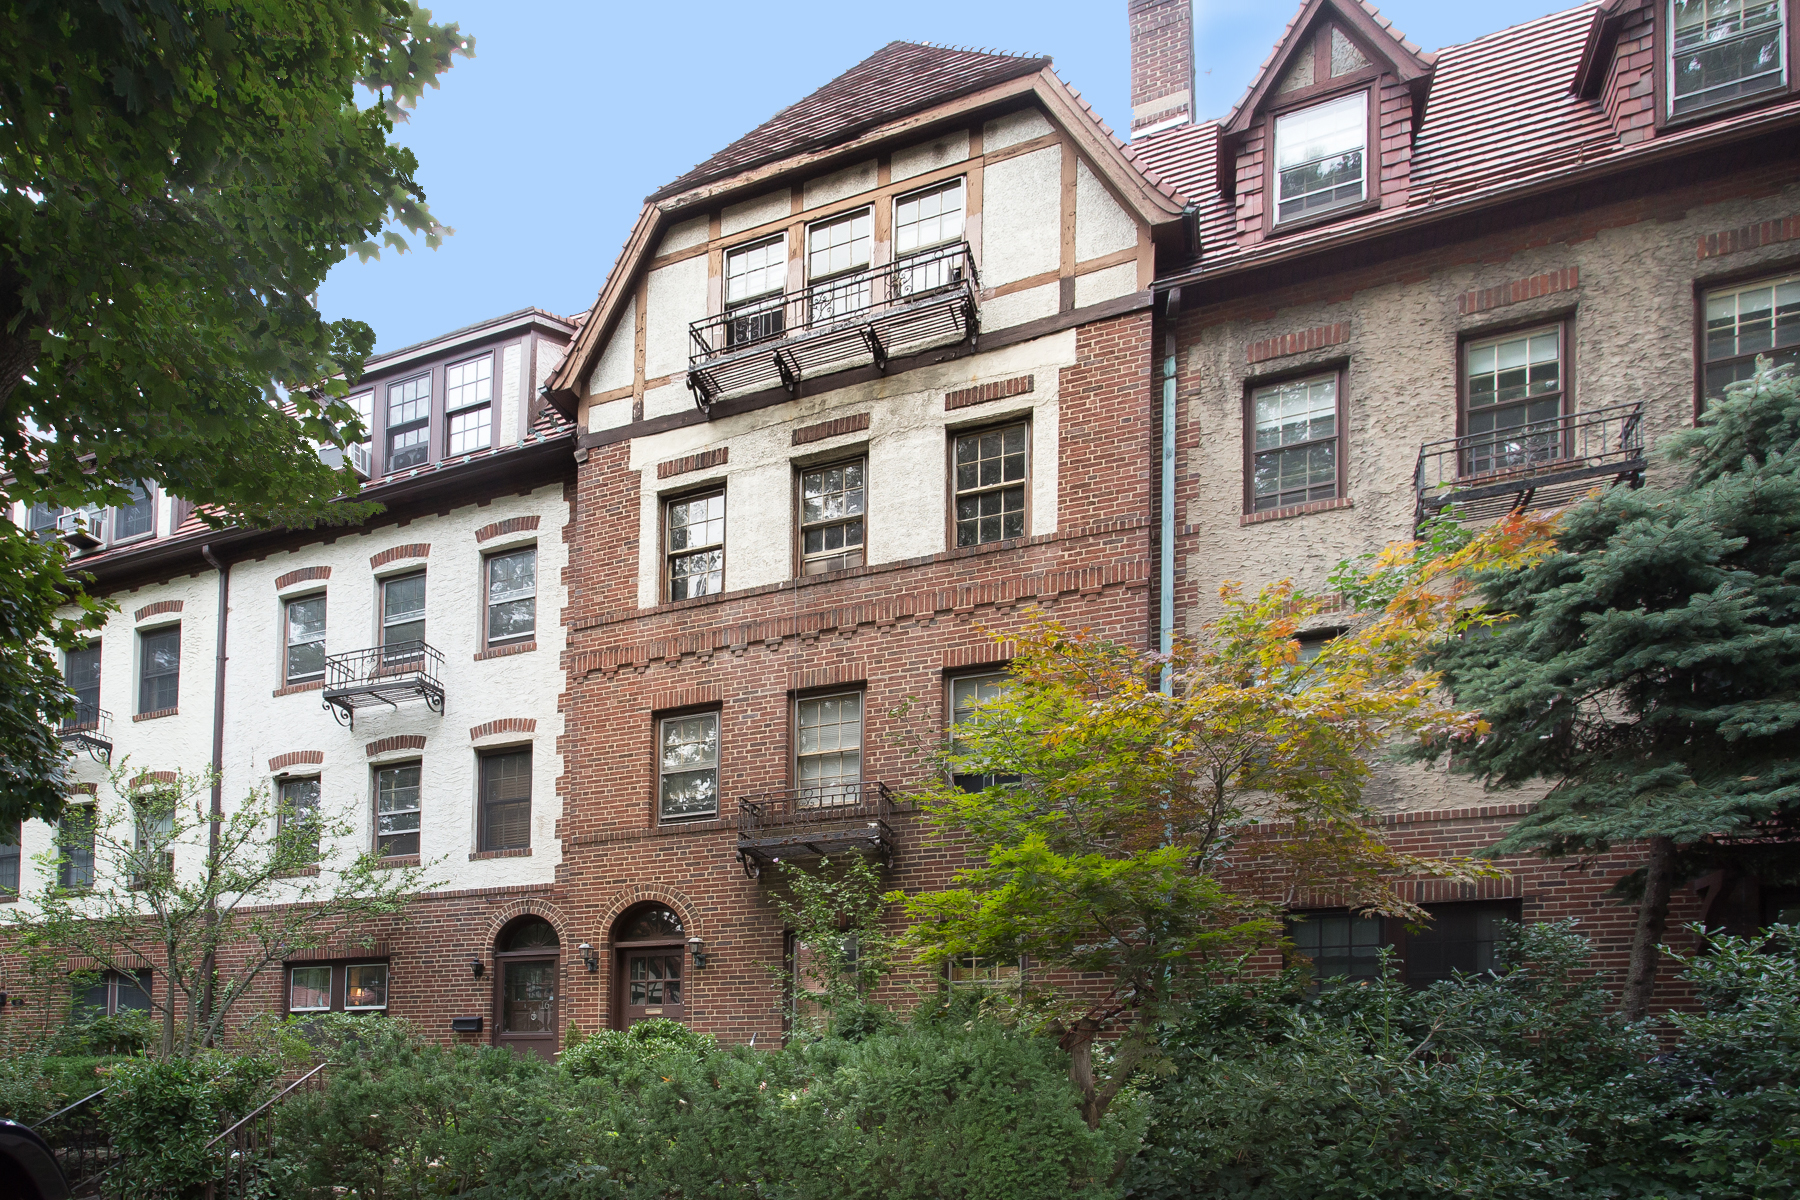 """Multi-Family Home for Sale at """"PRIME INVESTMENT 2 FAMILY"""" 166 Burns Street, Forest Hills Gardens, Forest Hills, New York 11375 United States"""